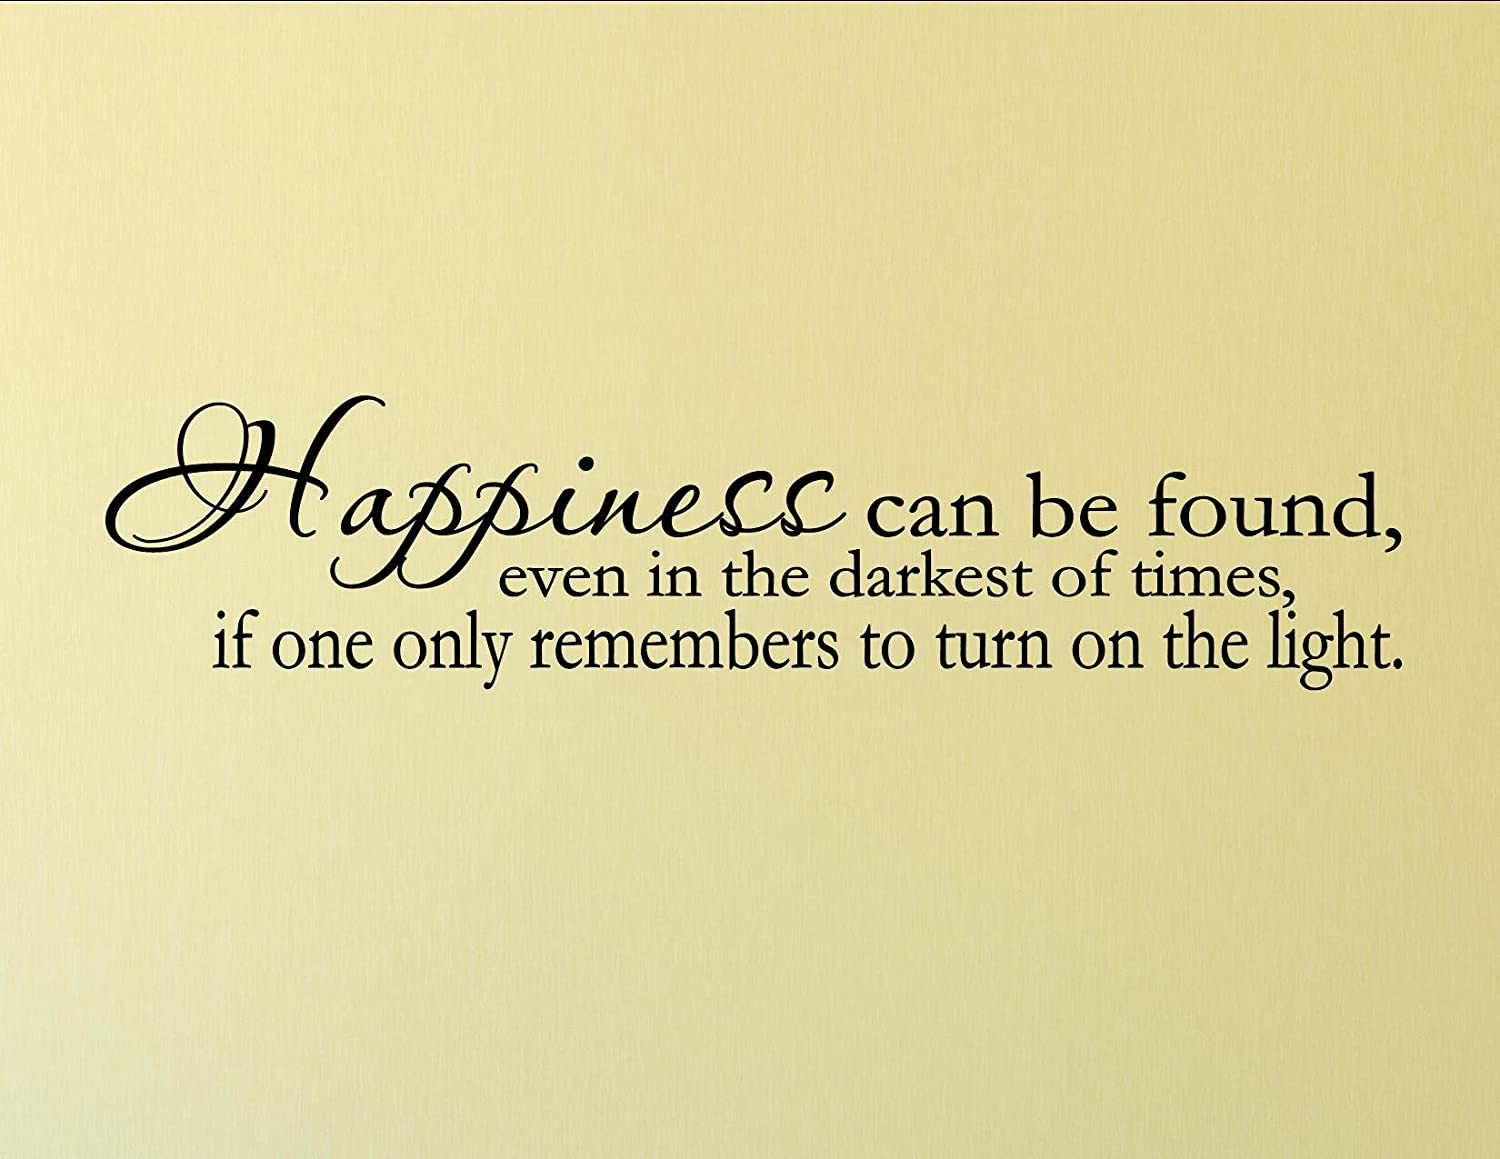 Amazon.com: Happiness can be found, even in the darkest of times, if ...